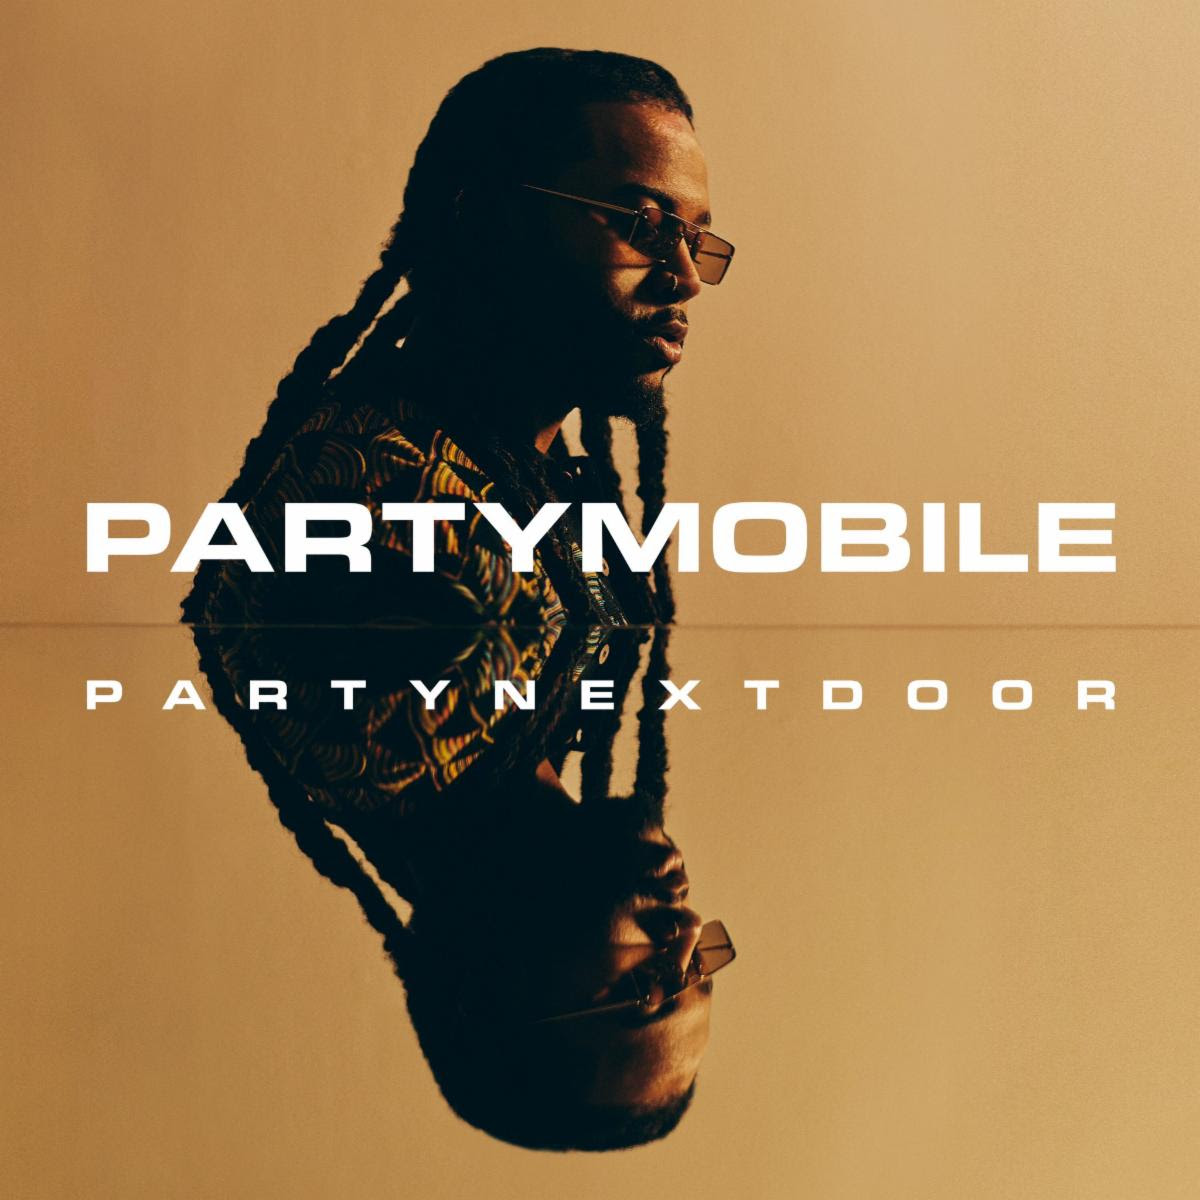 PARTYNEXTDOOR RELEASES NEW 'PARTYMOBILE' ALBUM